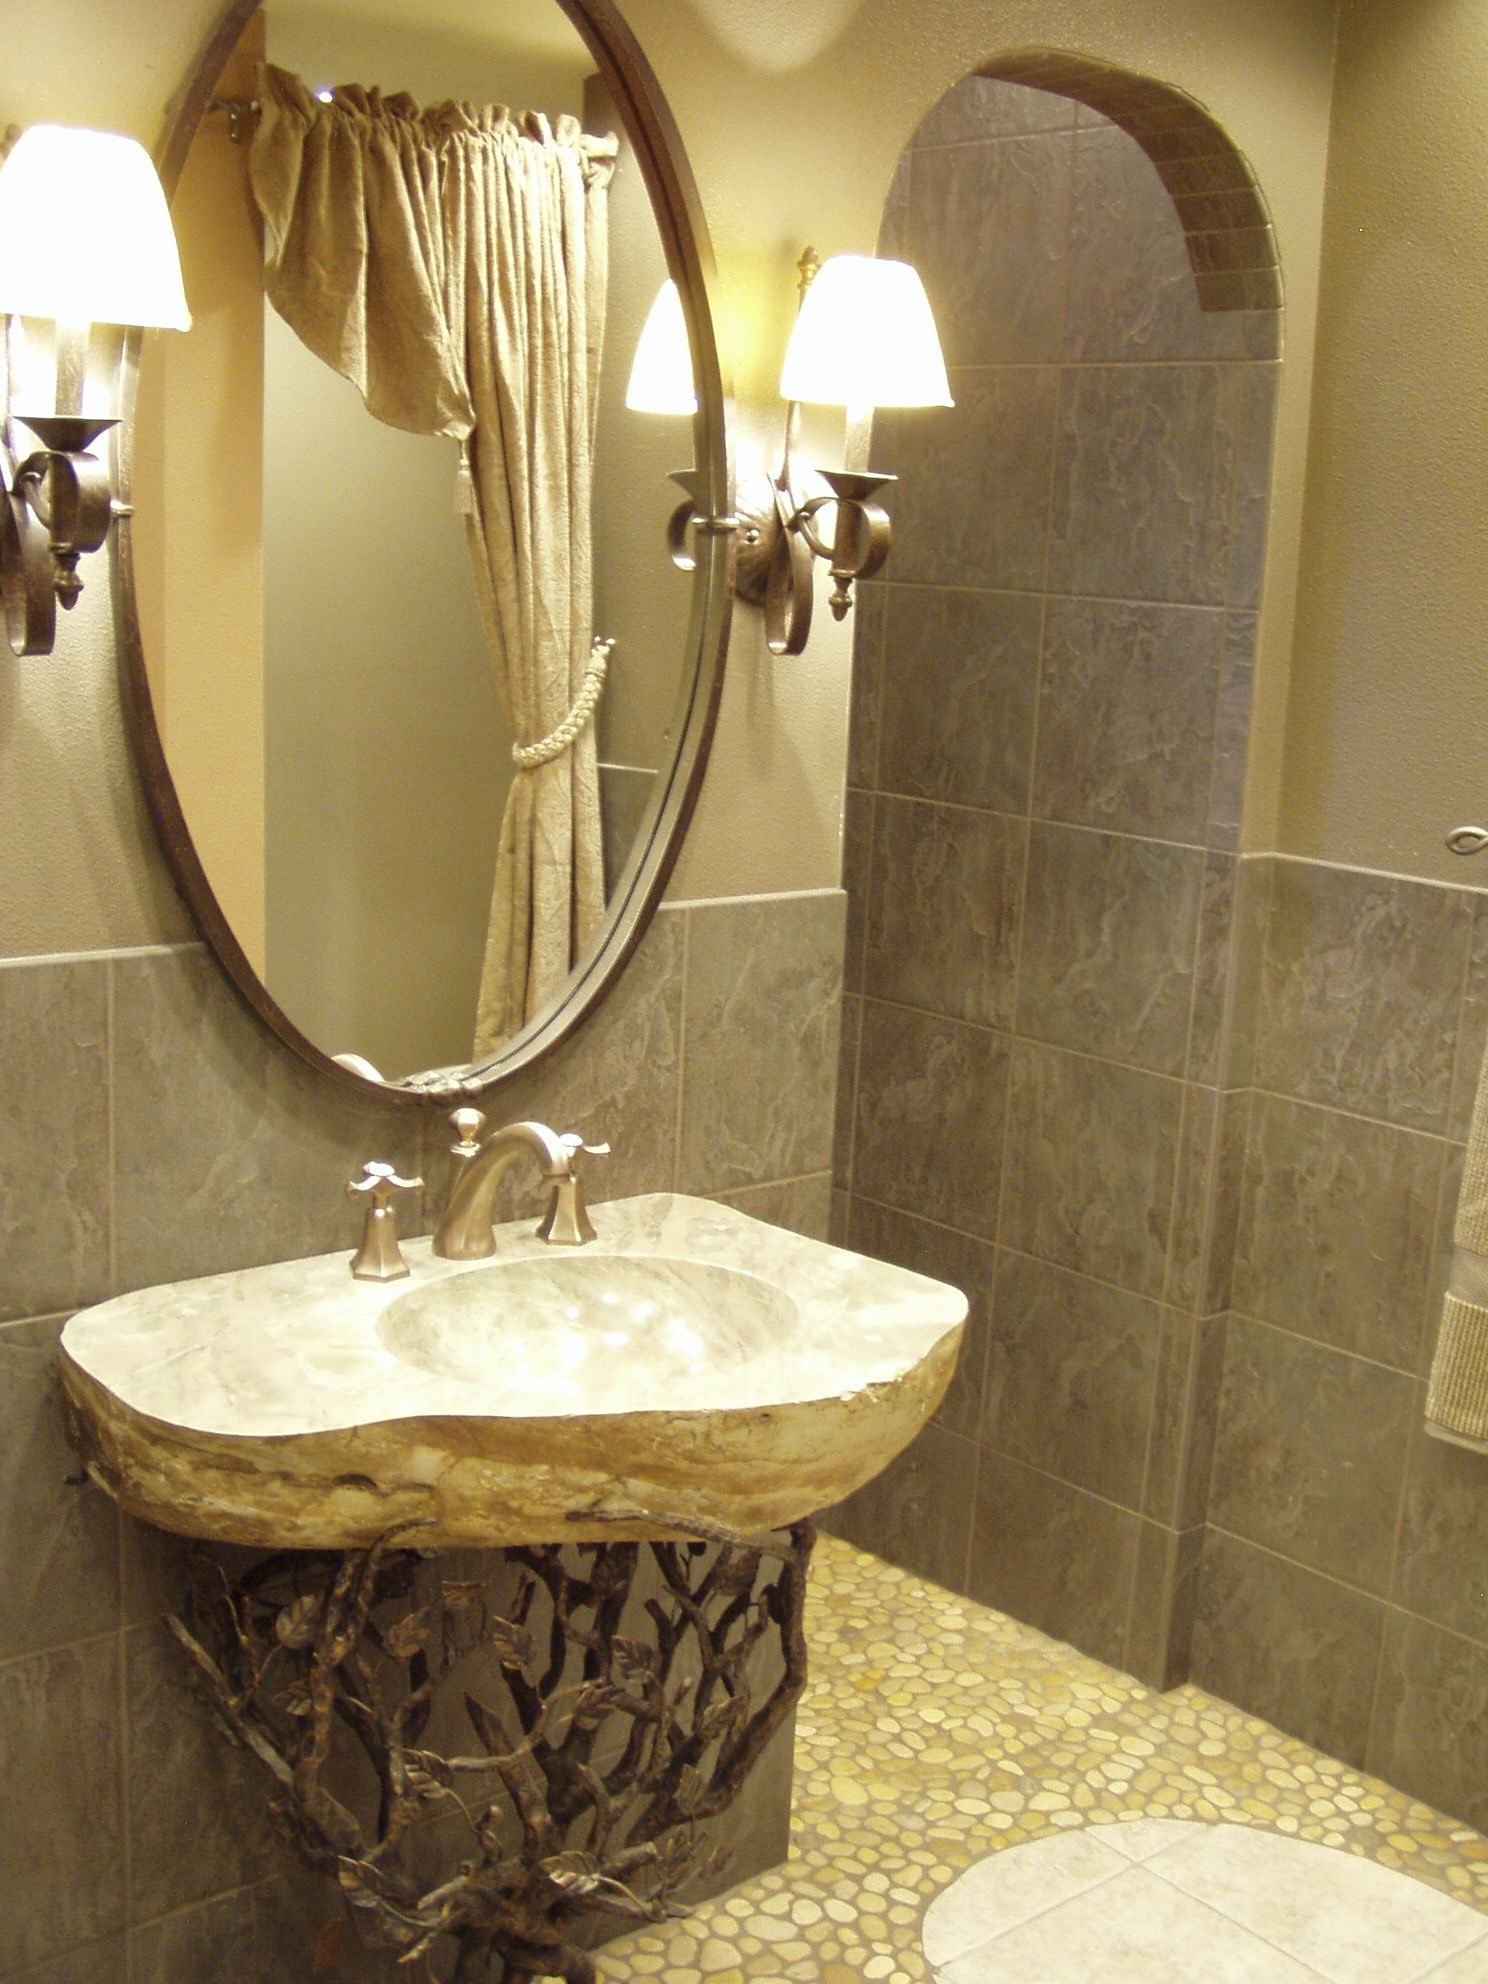 Doorless curbless tile shower with river rock floor in gray and